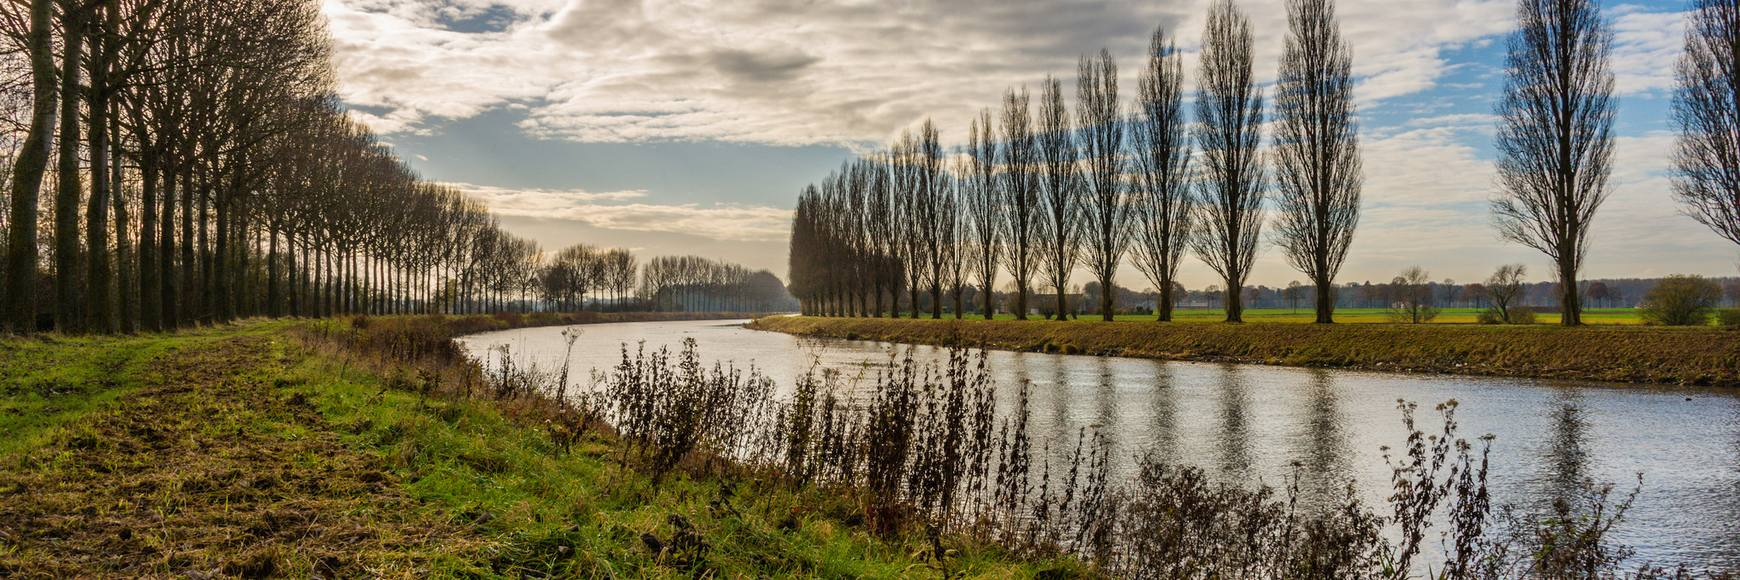 location peniche bruges